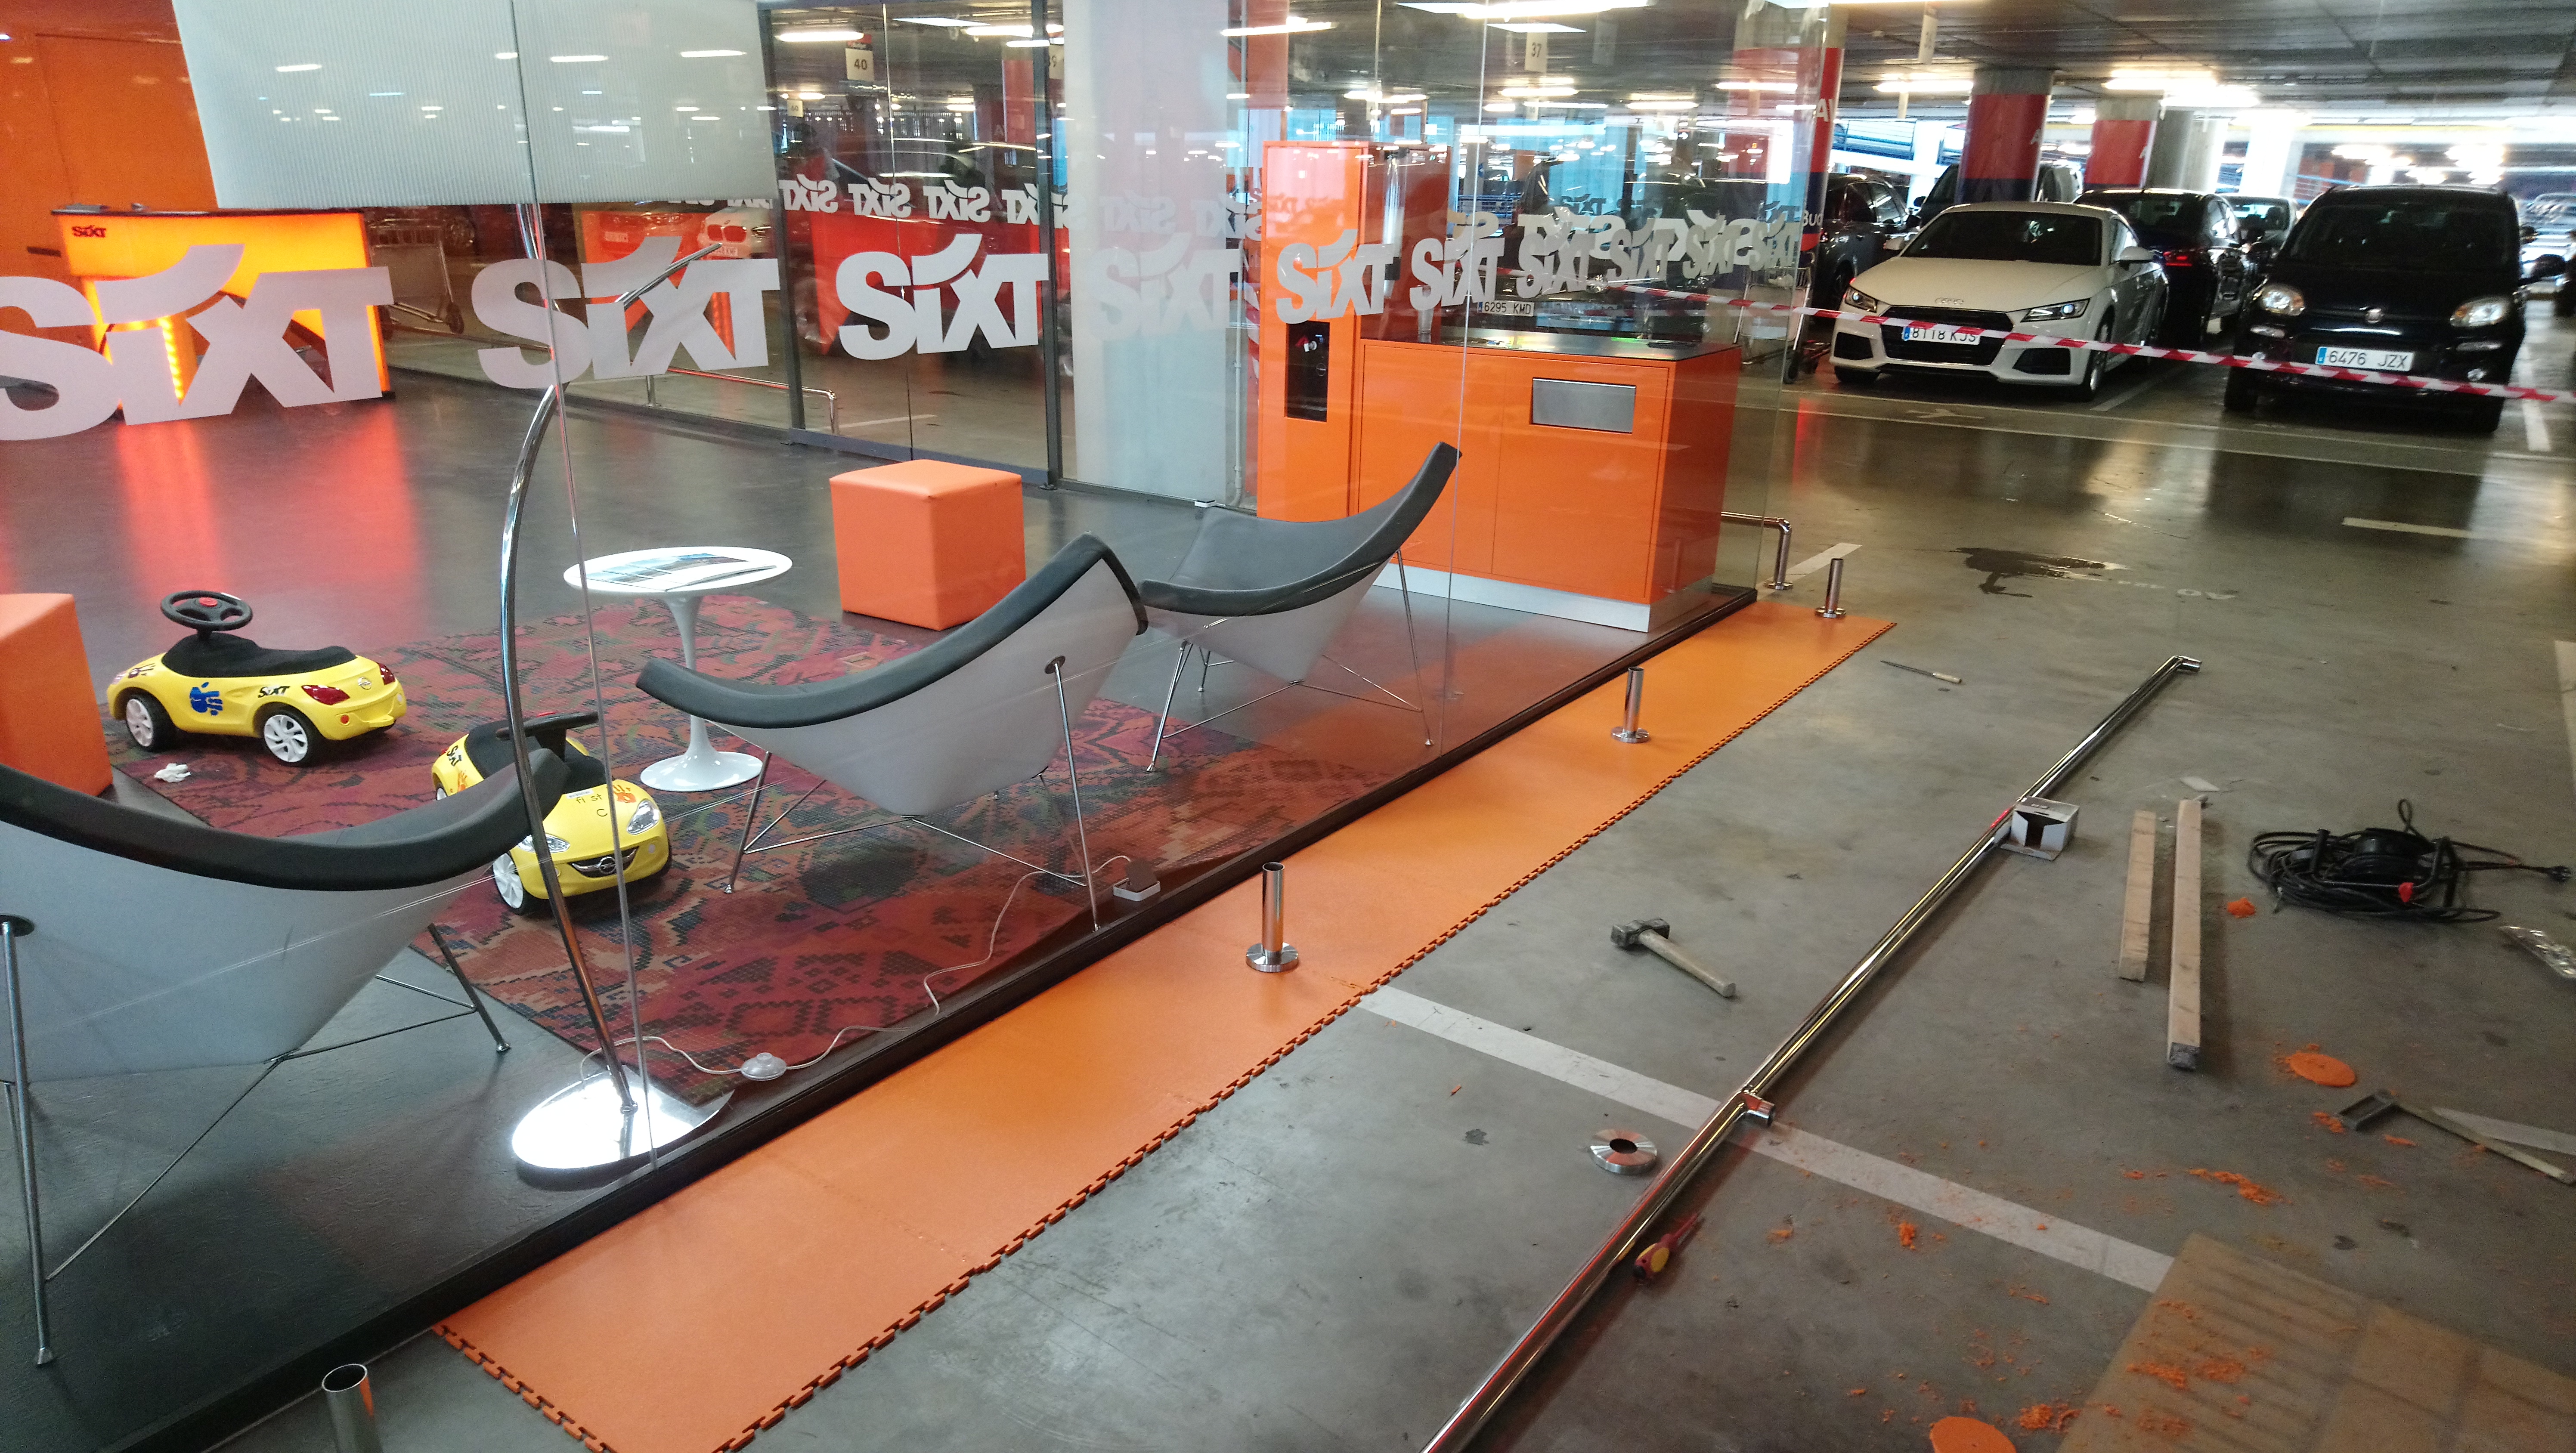 sixt t1 parking reforma 12